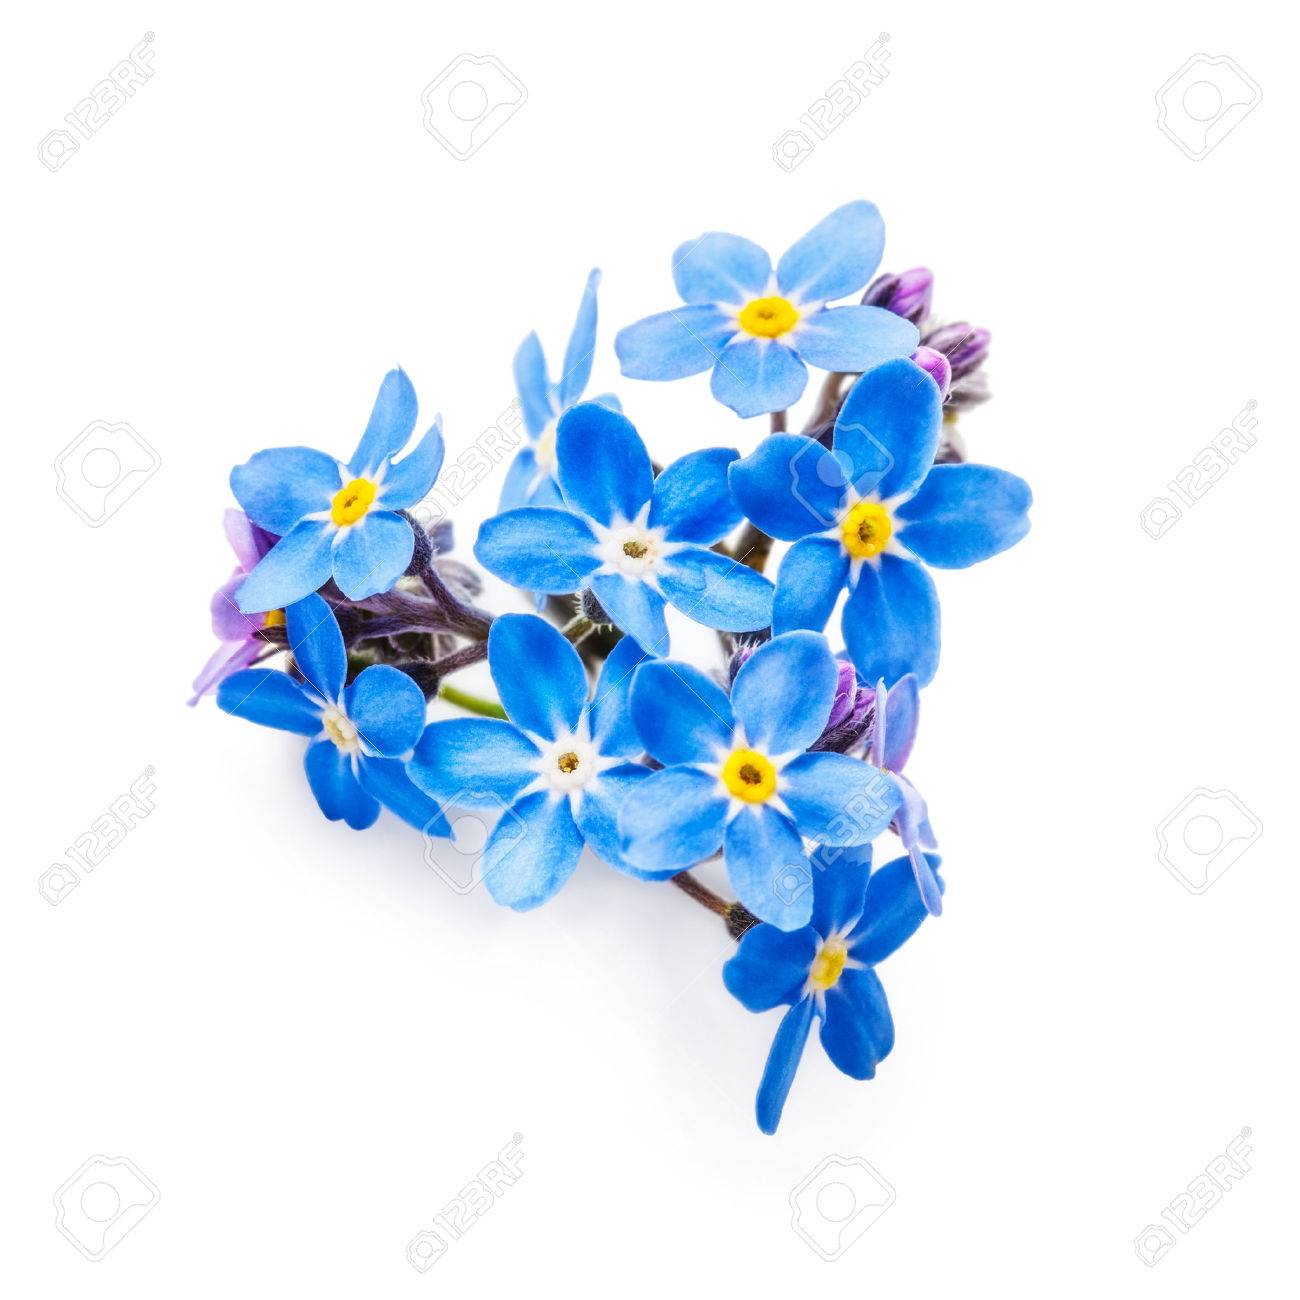 Blue Forget Me Not Flowers Bunch Isolated On White Background